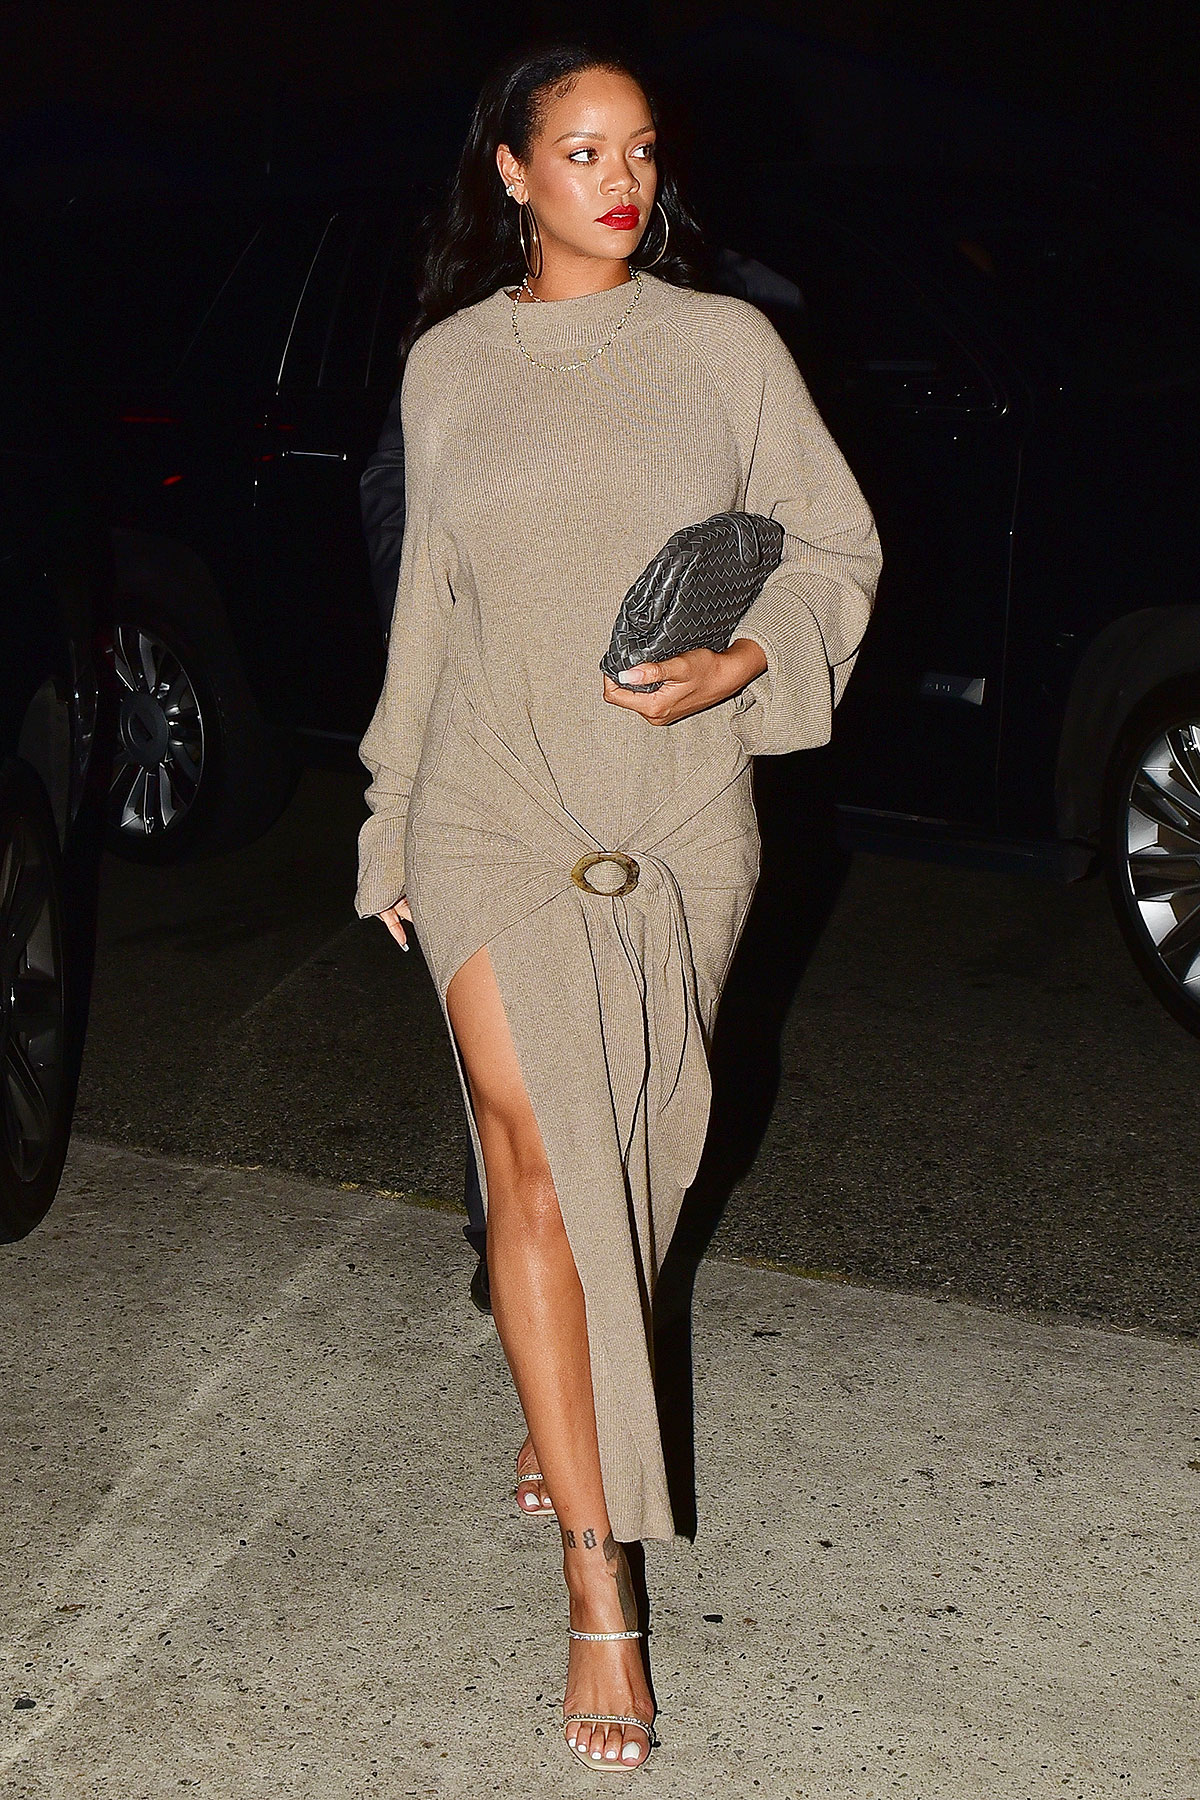 *EXCLUSIVE* Rihanna leaves Mason restaurant after having dinner with her mom